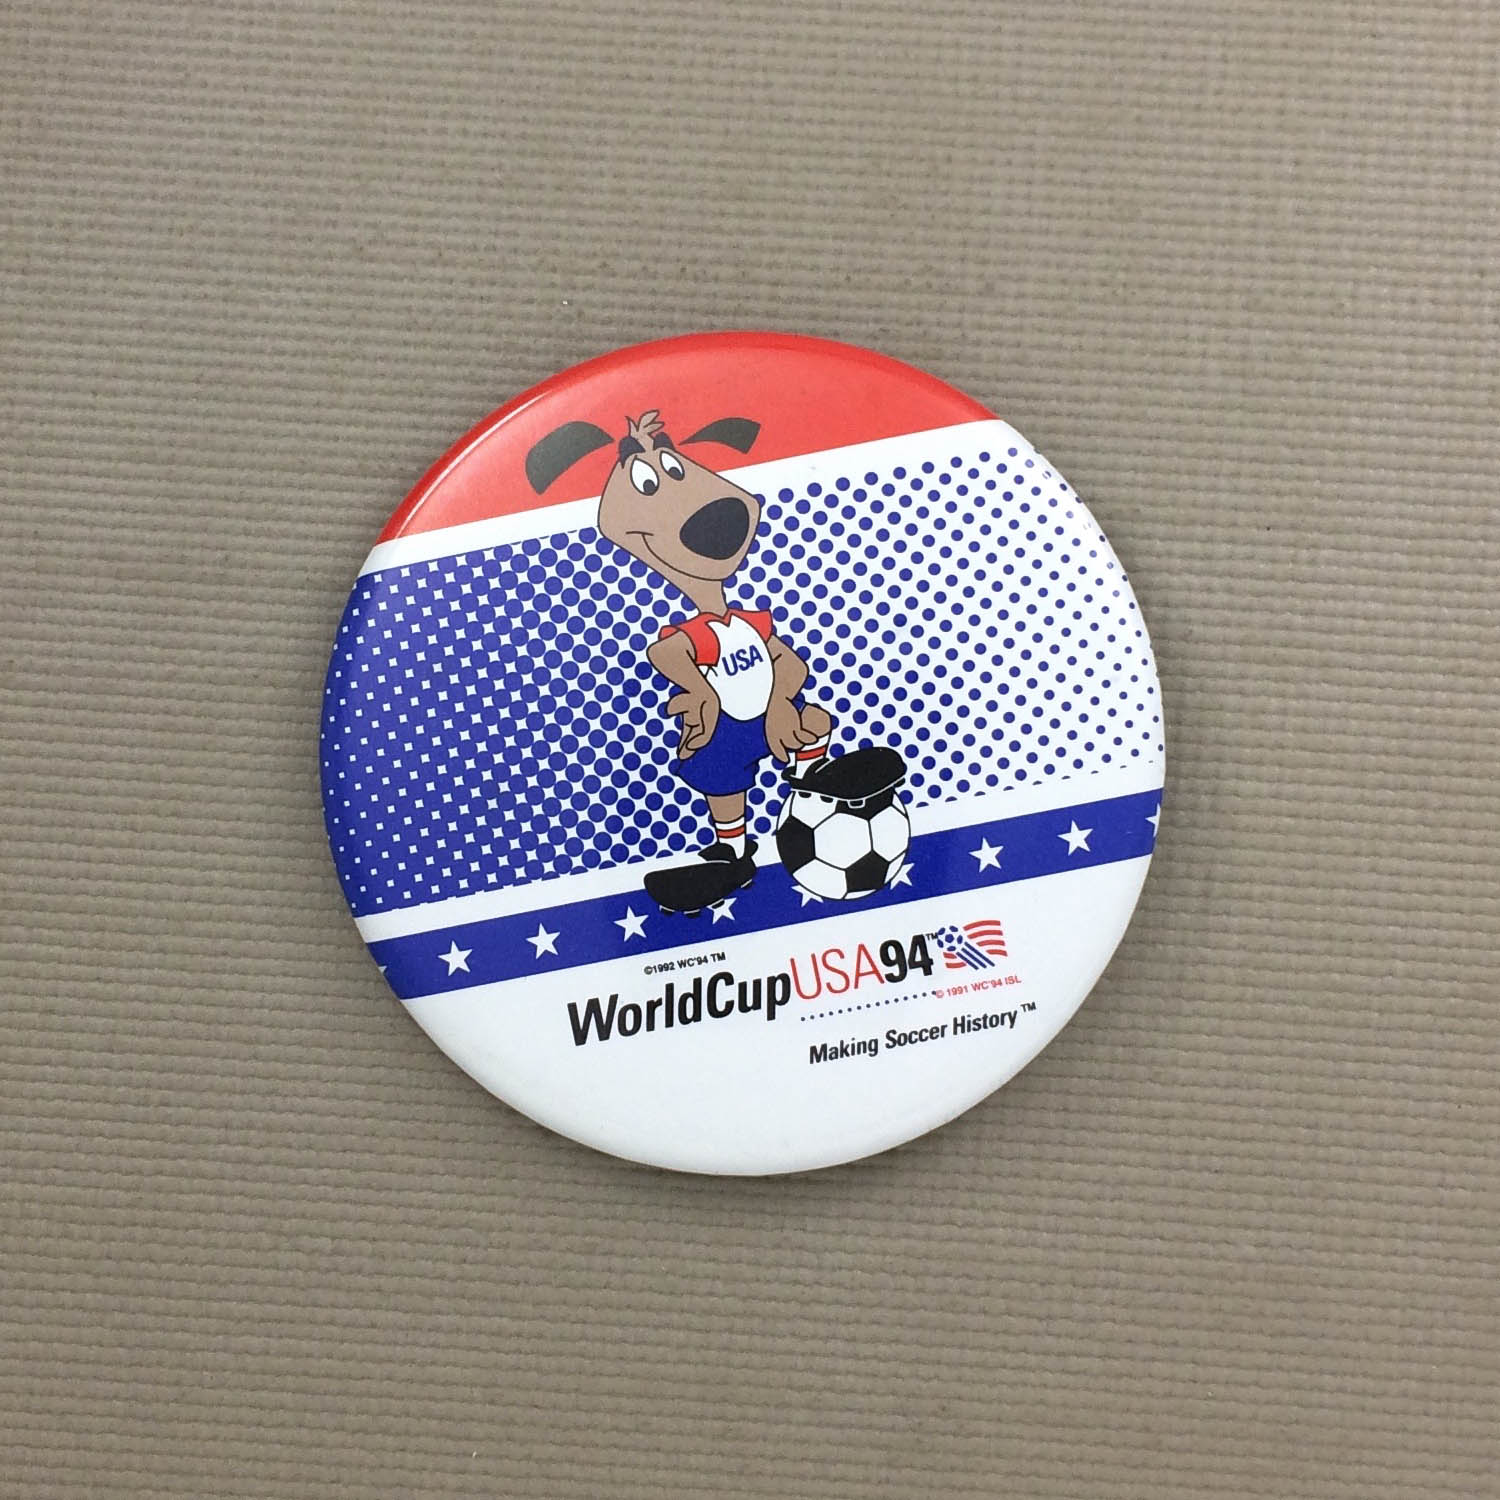 World Cup '94 Mascot Button